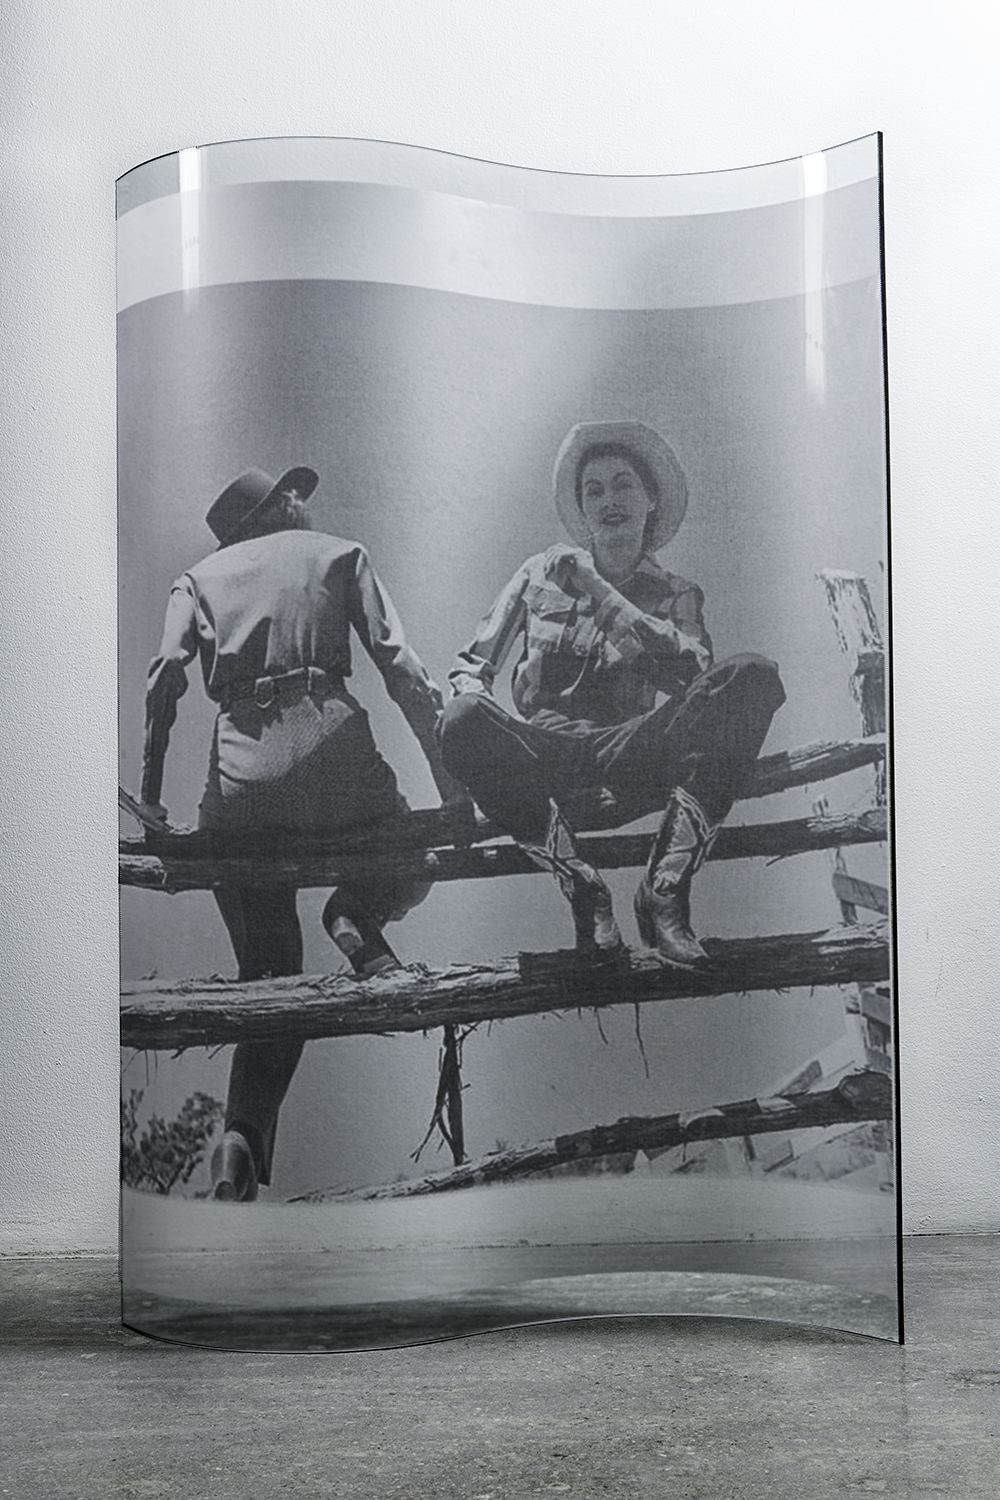 Untitled (Two Women on a Fence) by Servance Mary. Image courtesy of Missoni.